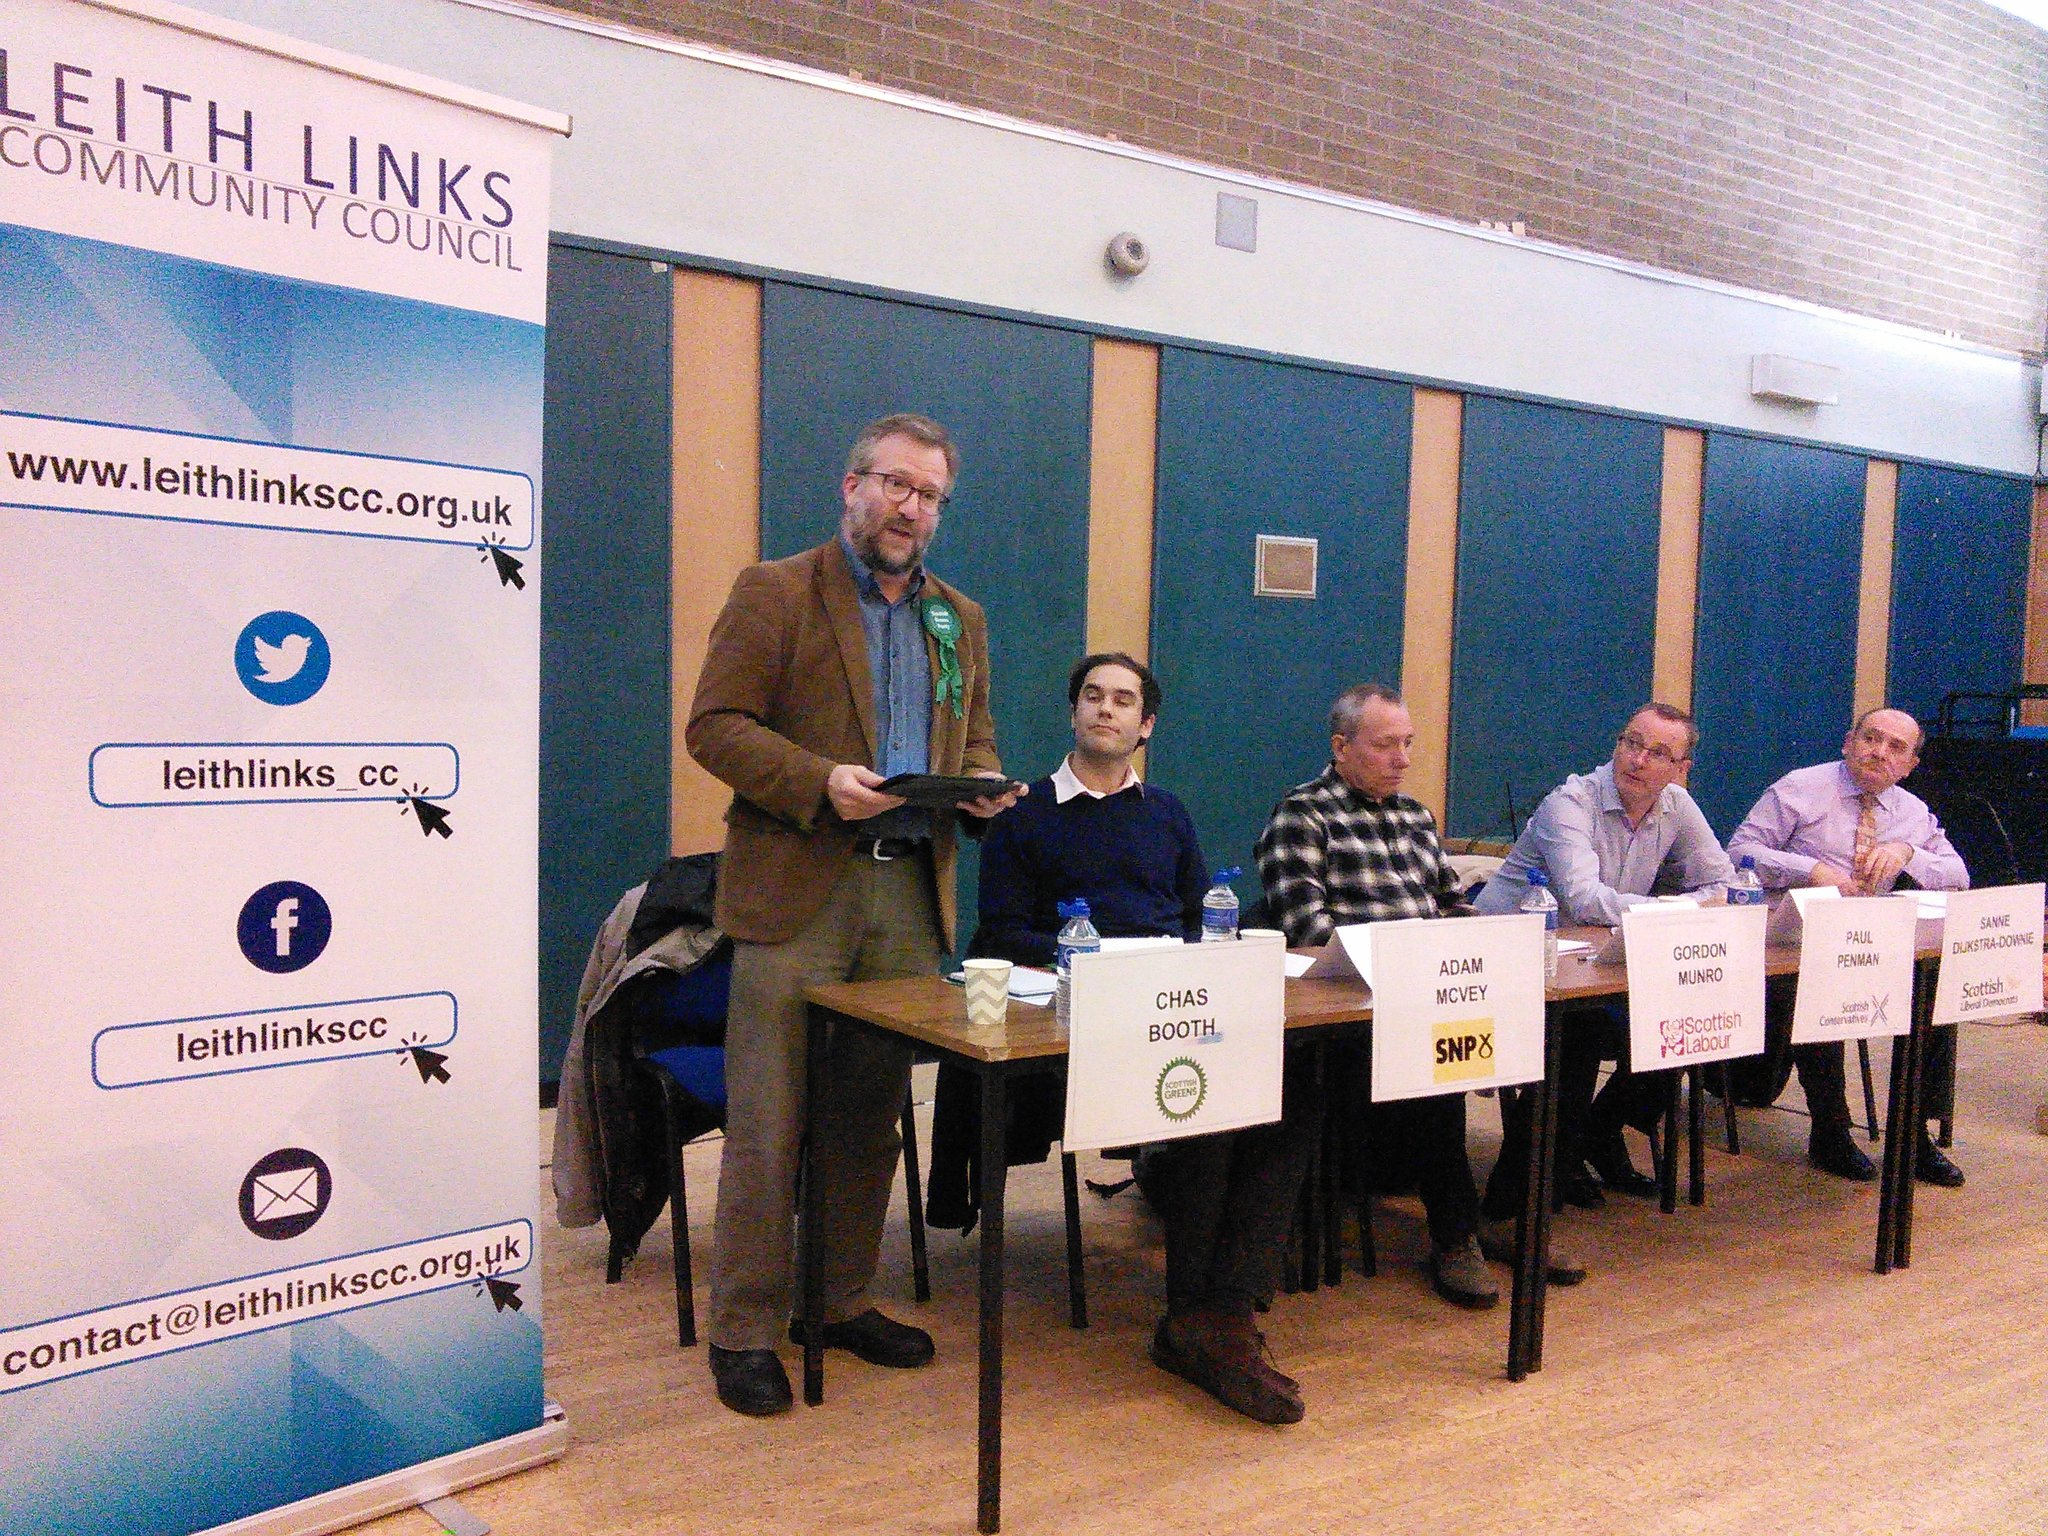 Strong opening message from @CllrChasBooth talking about living wage for carers and importance of community resources  #LeithHustings https://t.co/e967BURJRx